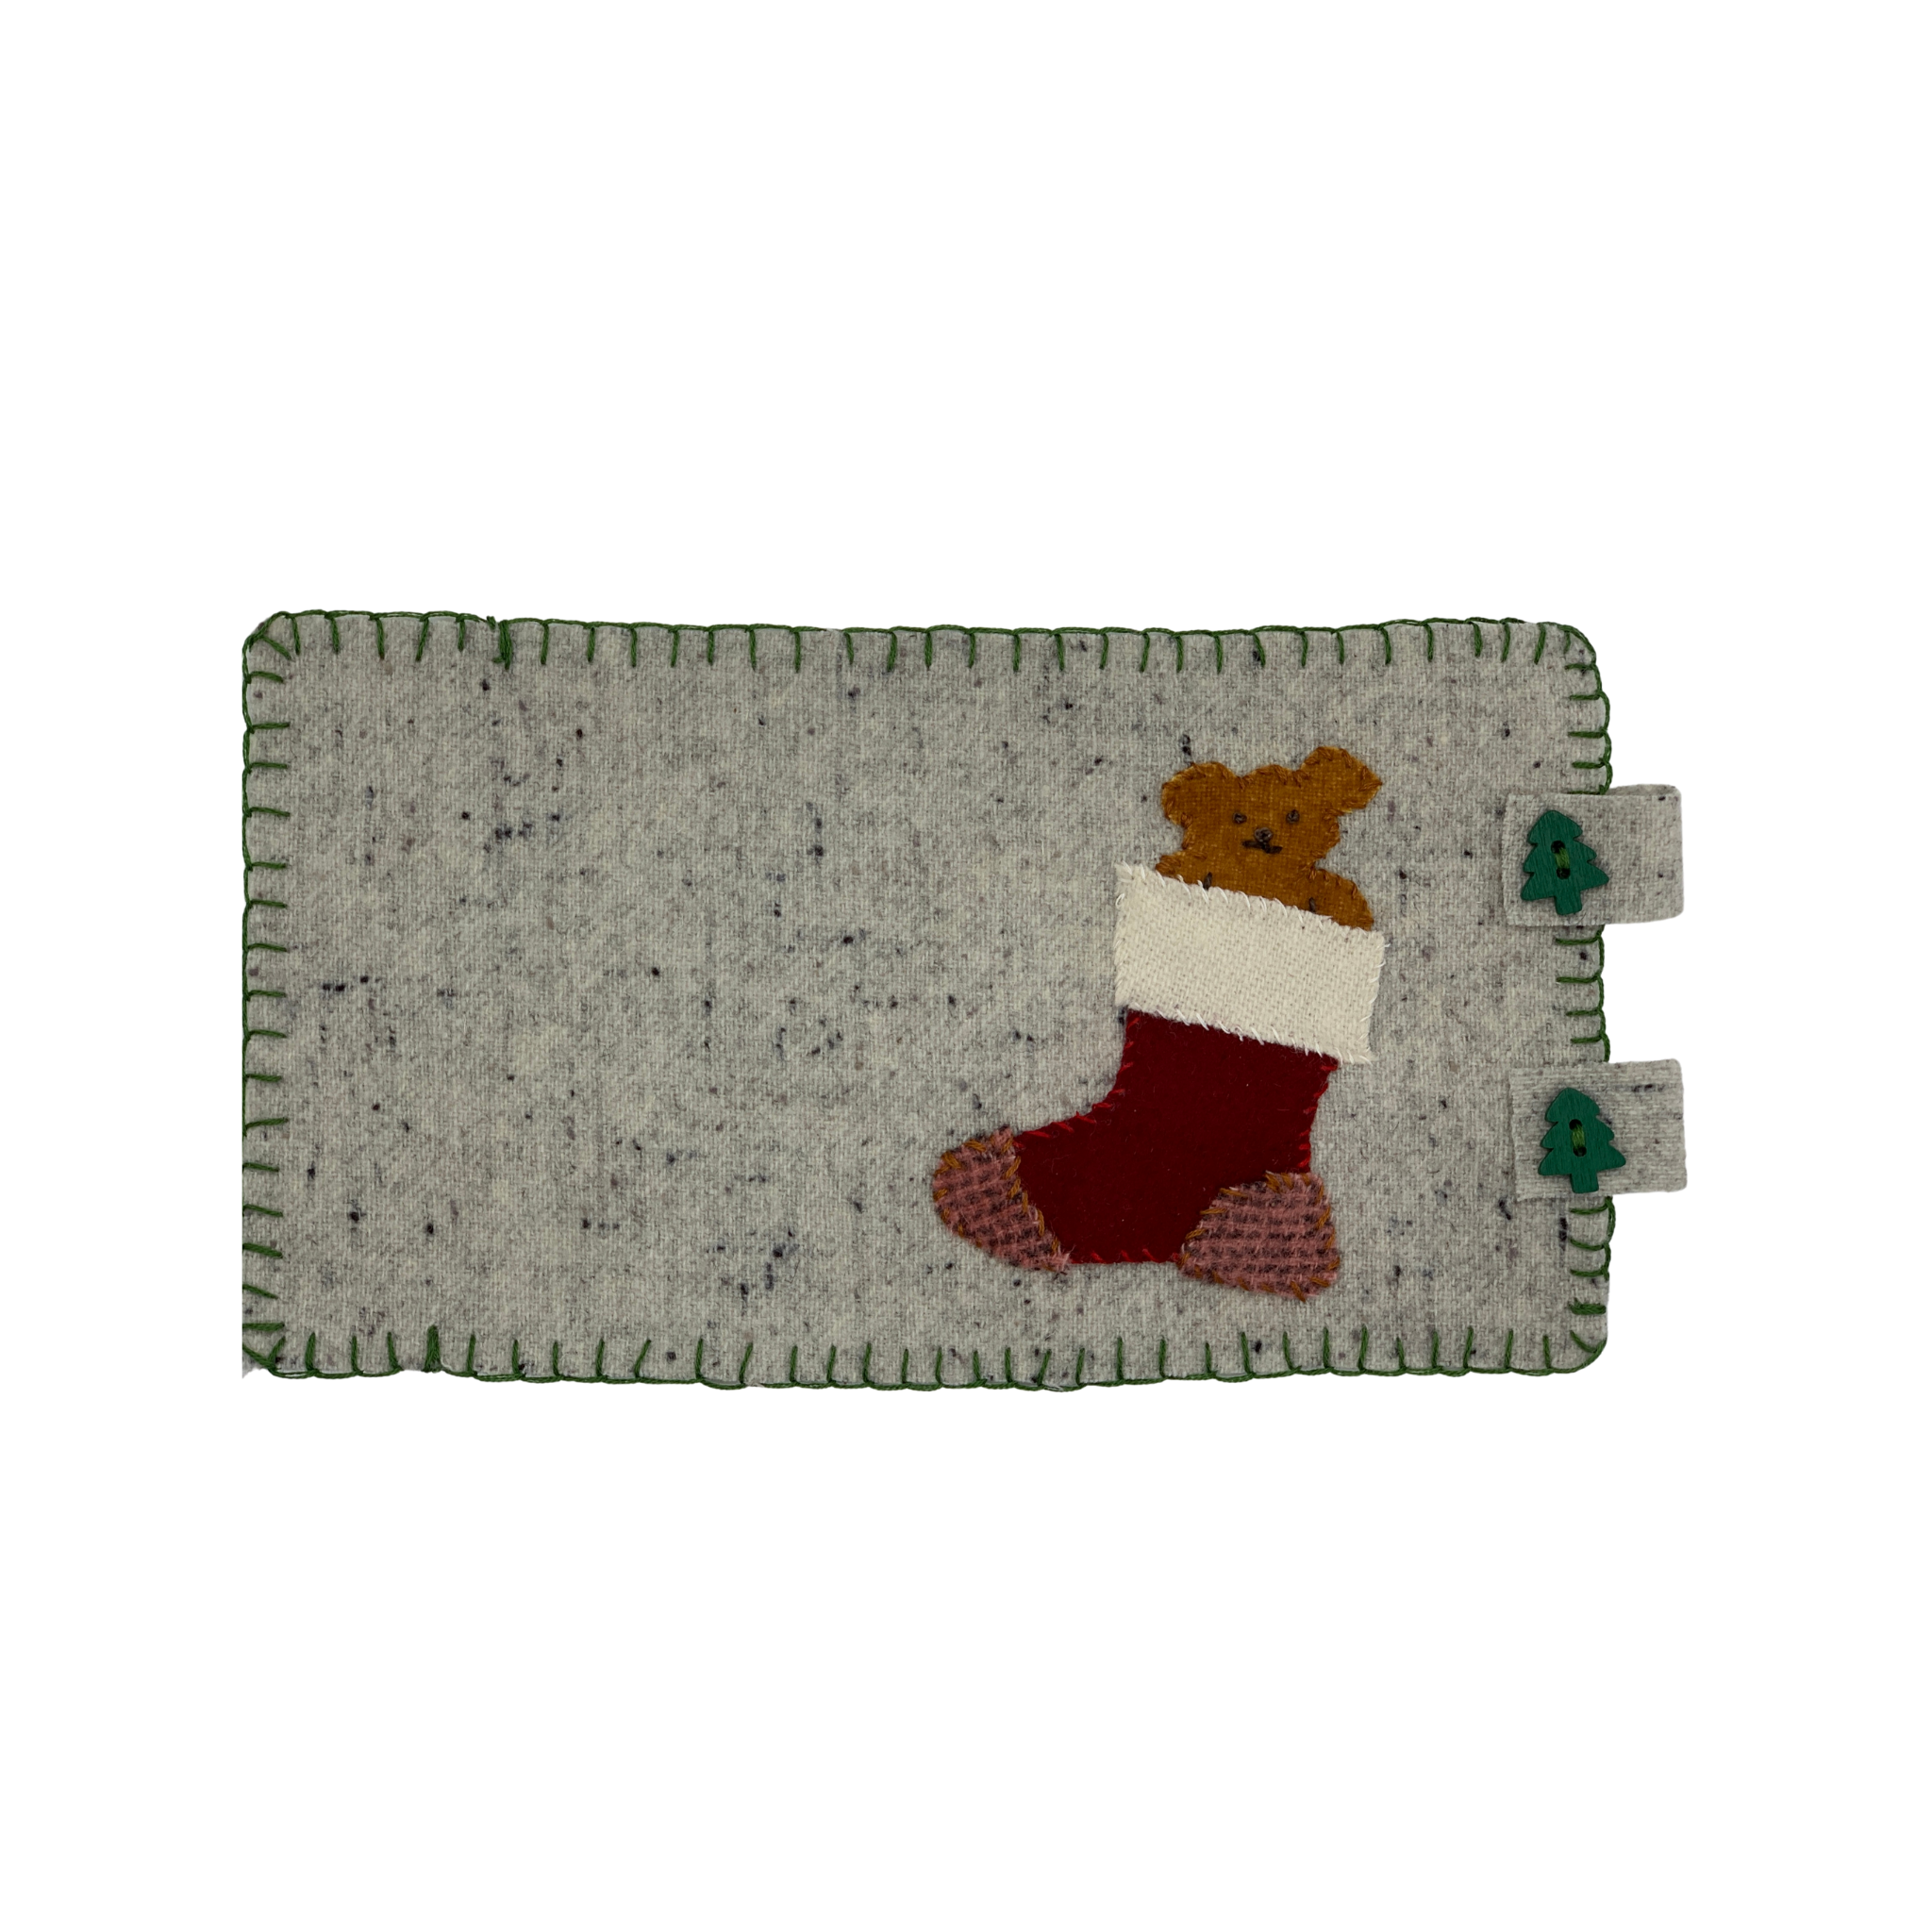 Mug rug with wool applique with koala bear coming out of christmas stocking.